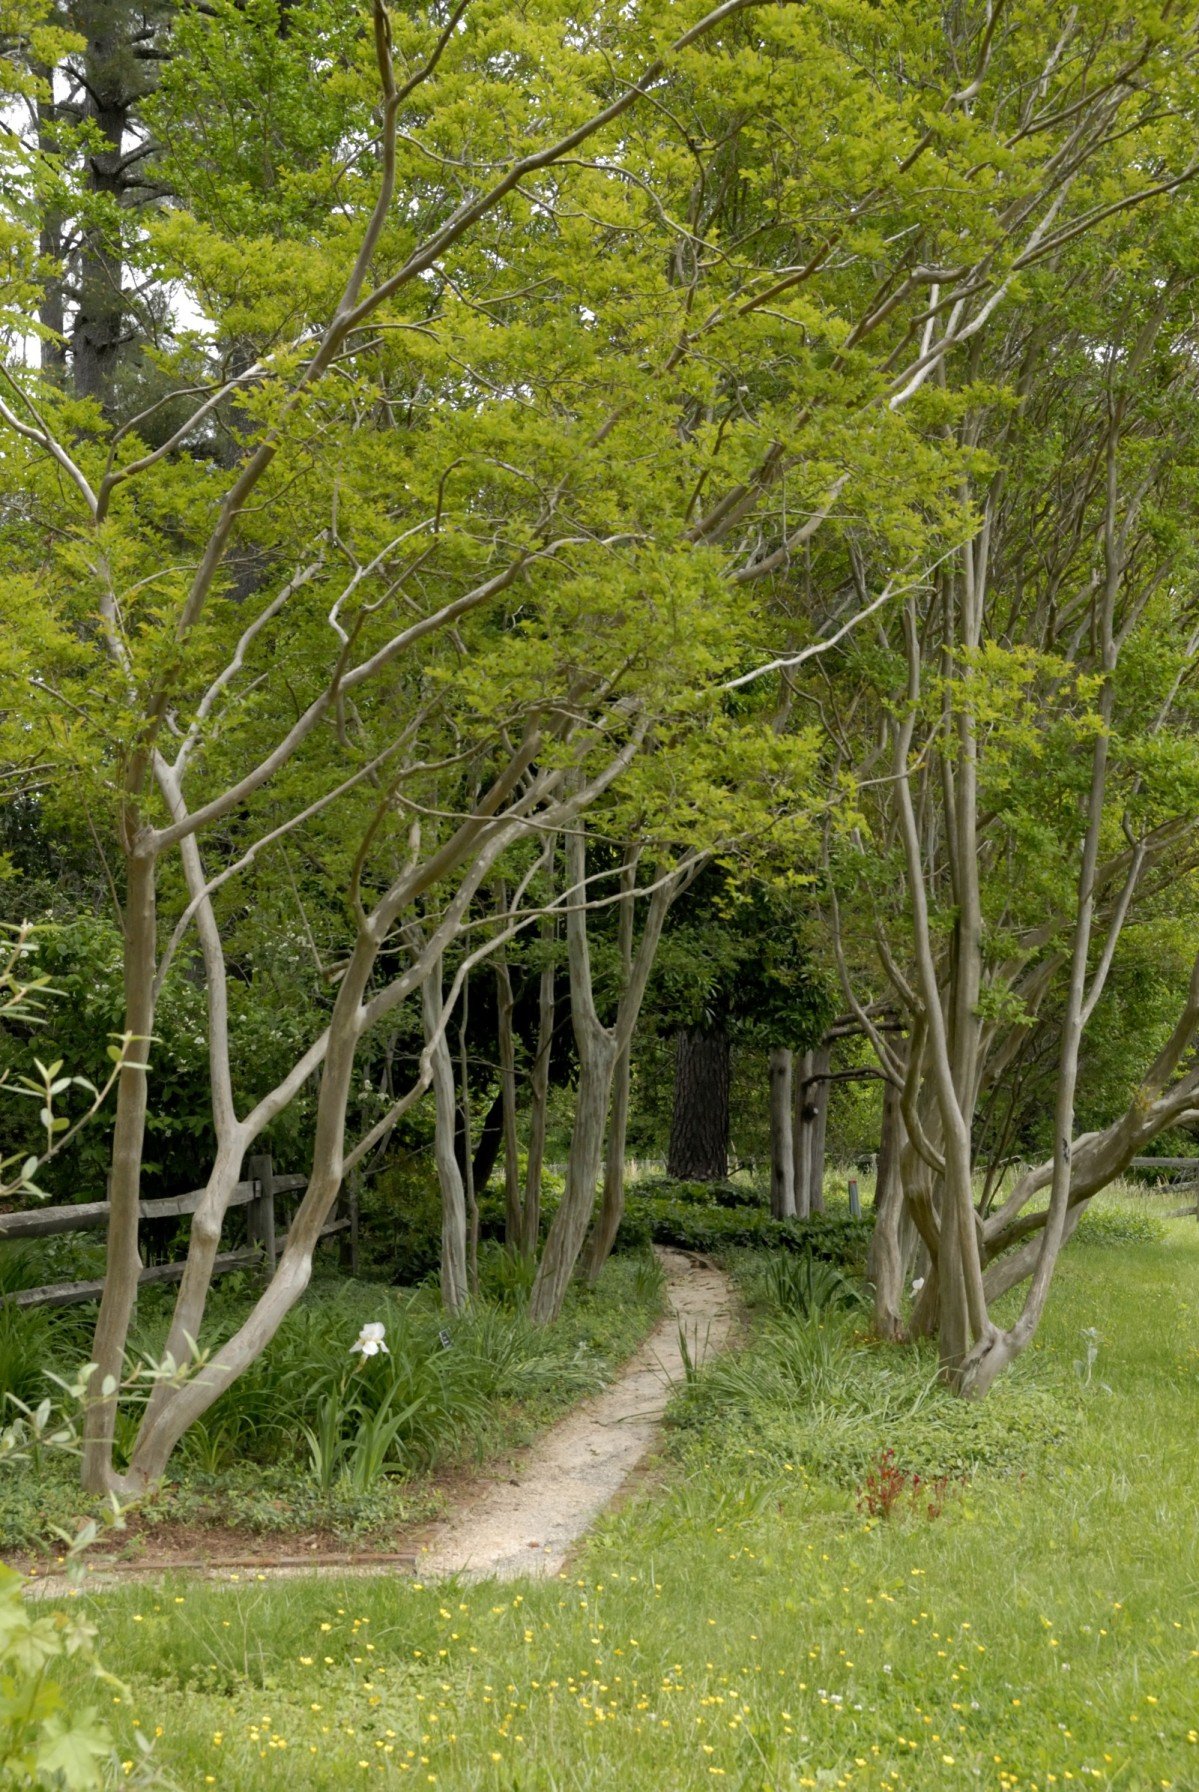 Trees flanks a narrow path through the grass